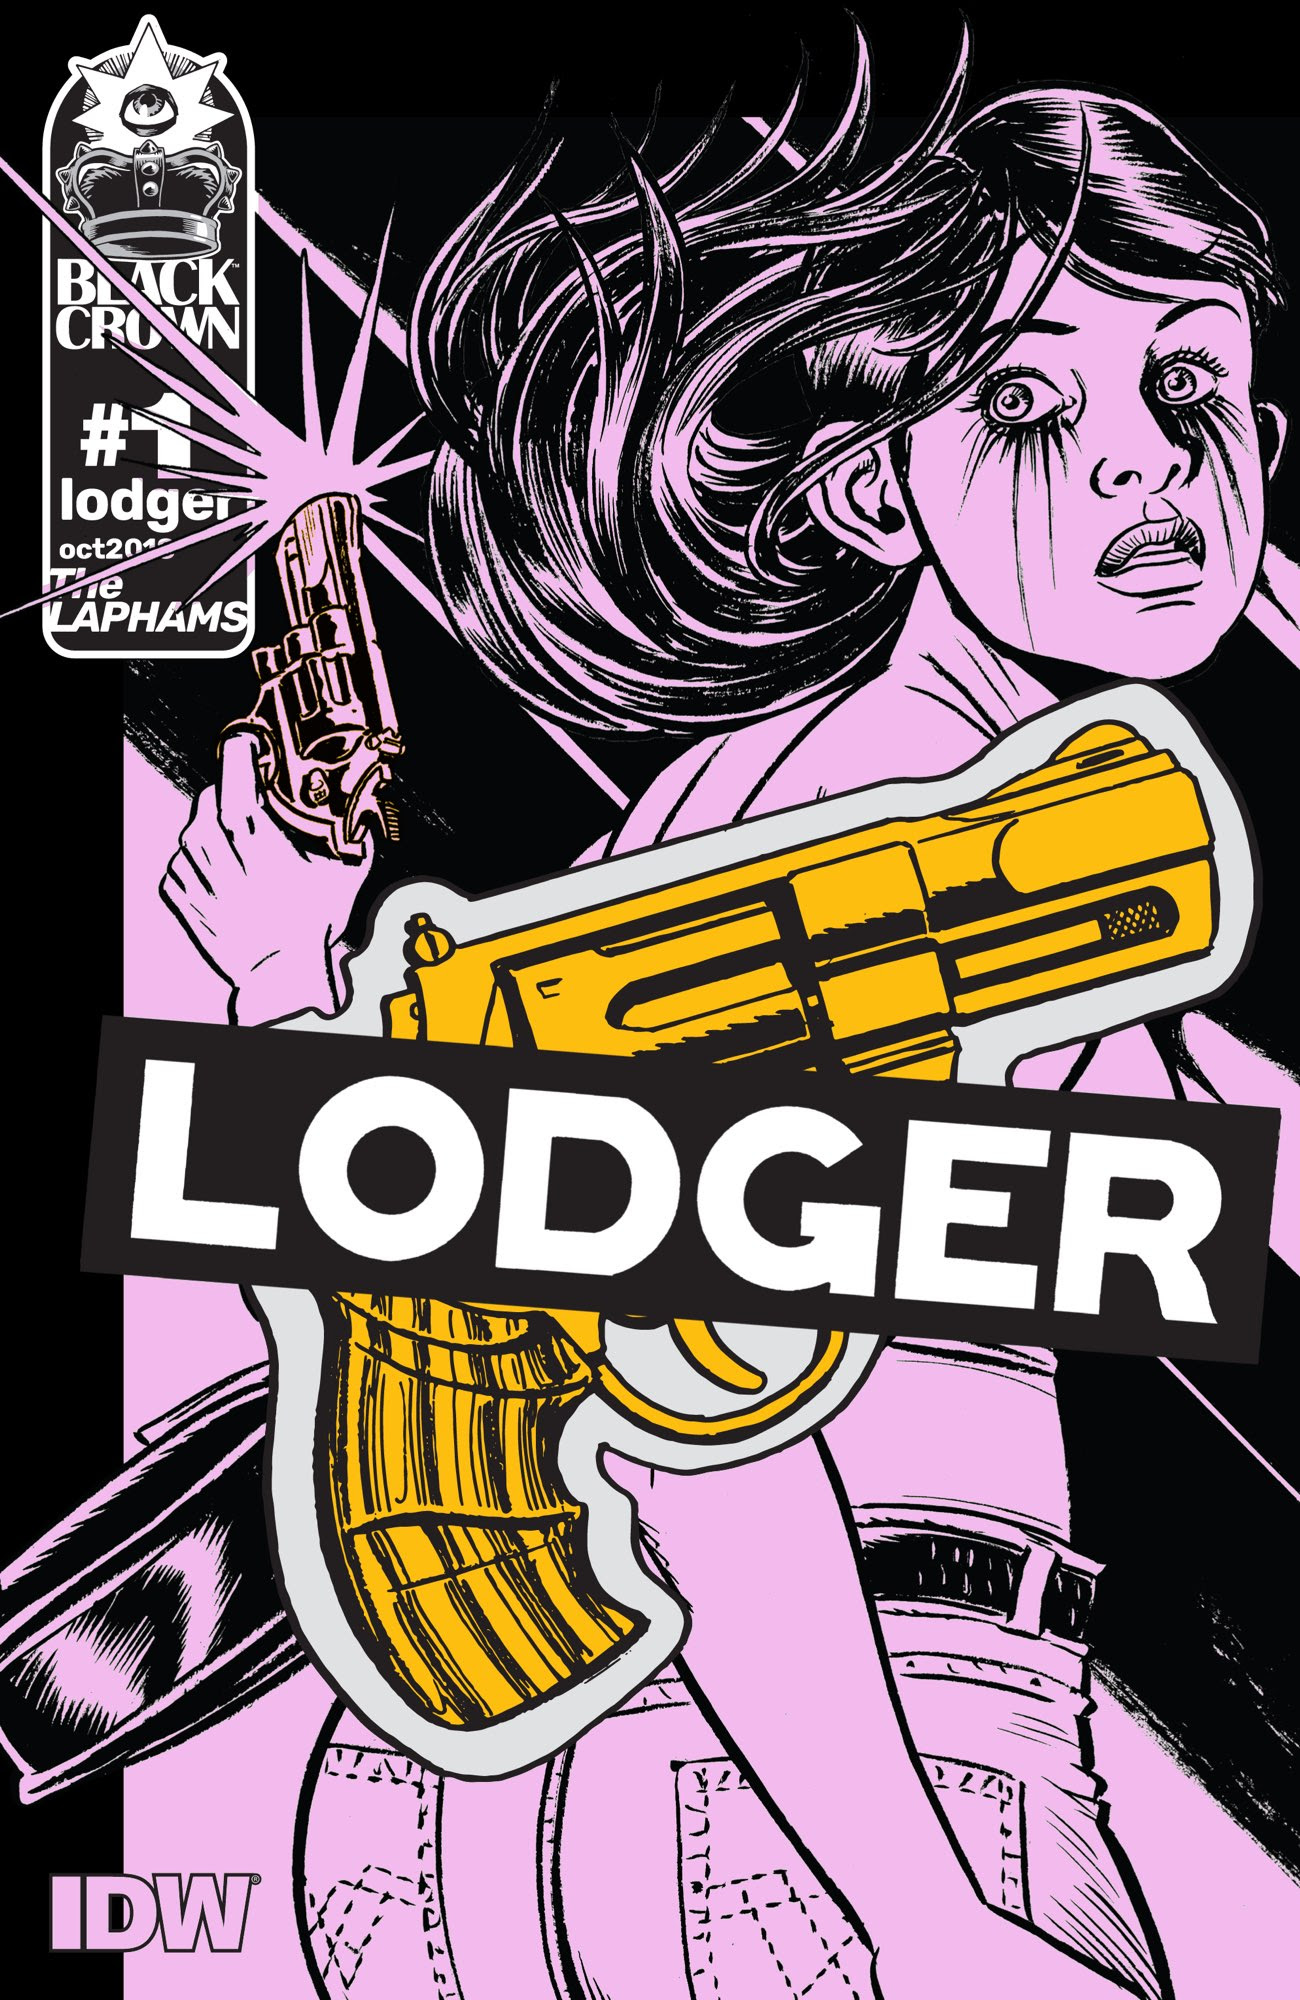 SDCC '18: Your Mother Warned You About Travel Bloggers – Lodger Arrives From Black Crown in October